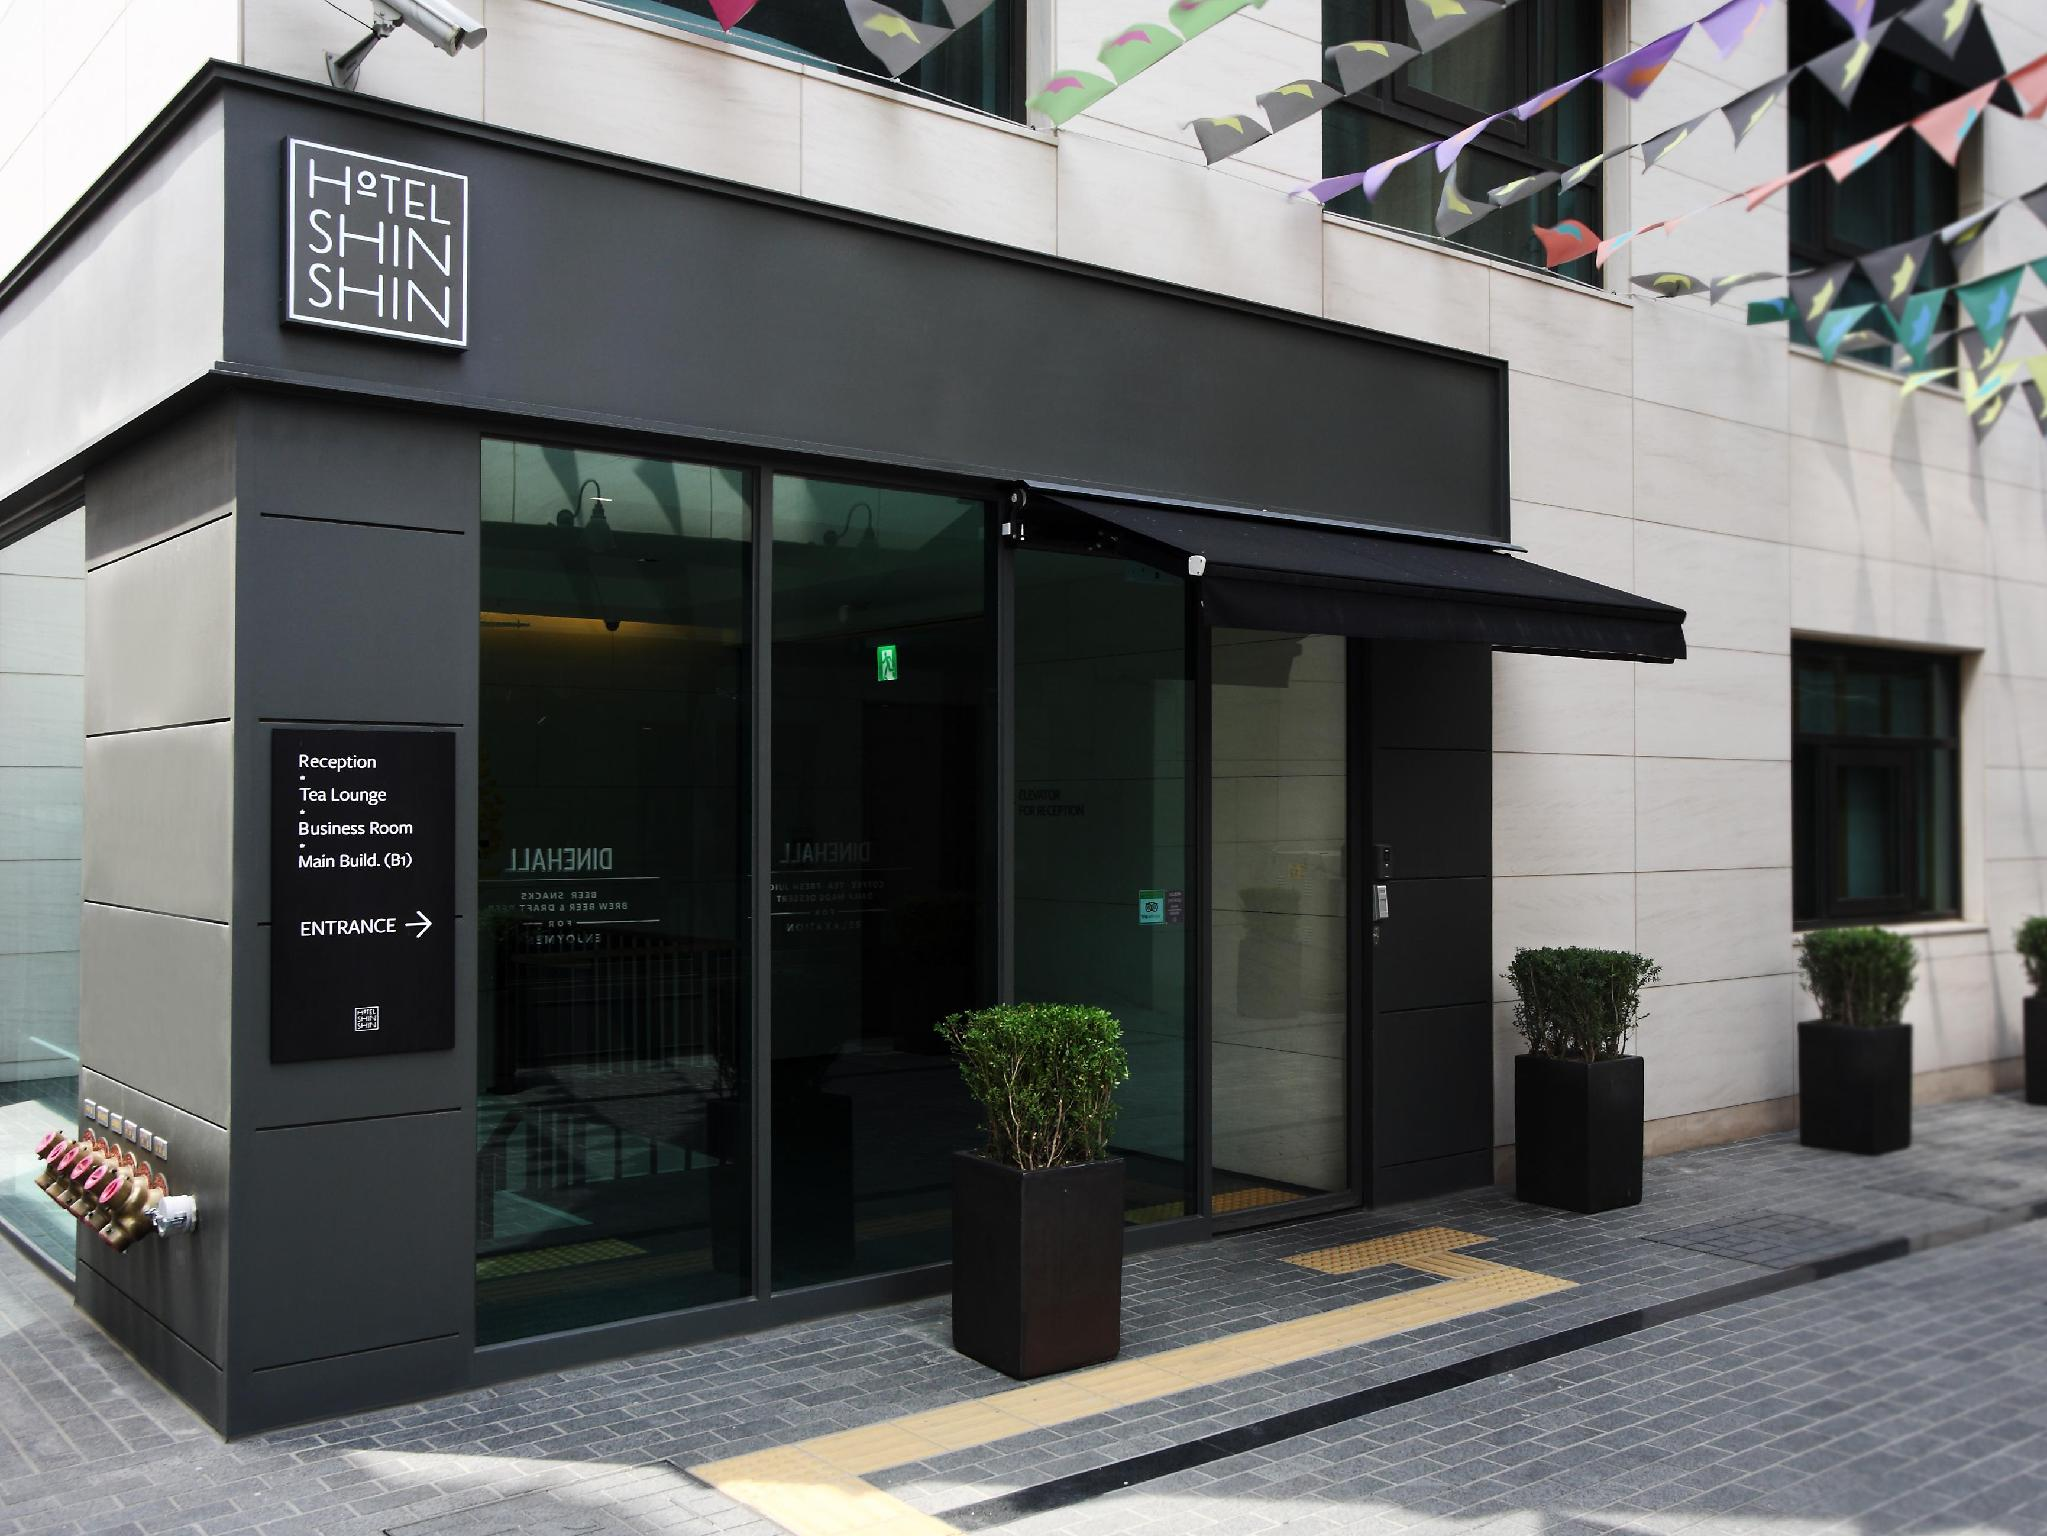 Shinshin Hotel Myeongdong - Hotels and Accommodation in South Korea, Asia